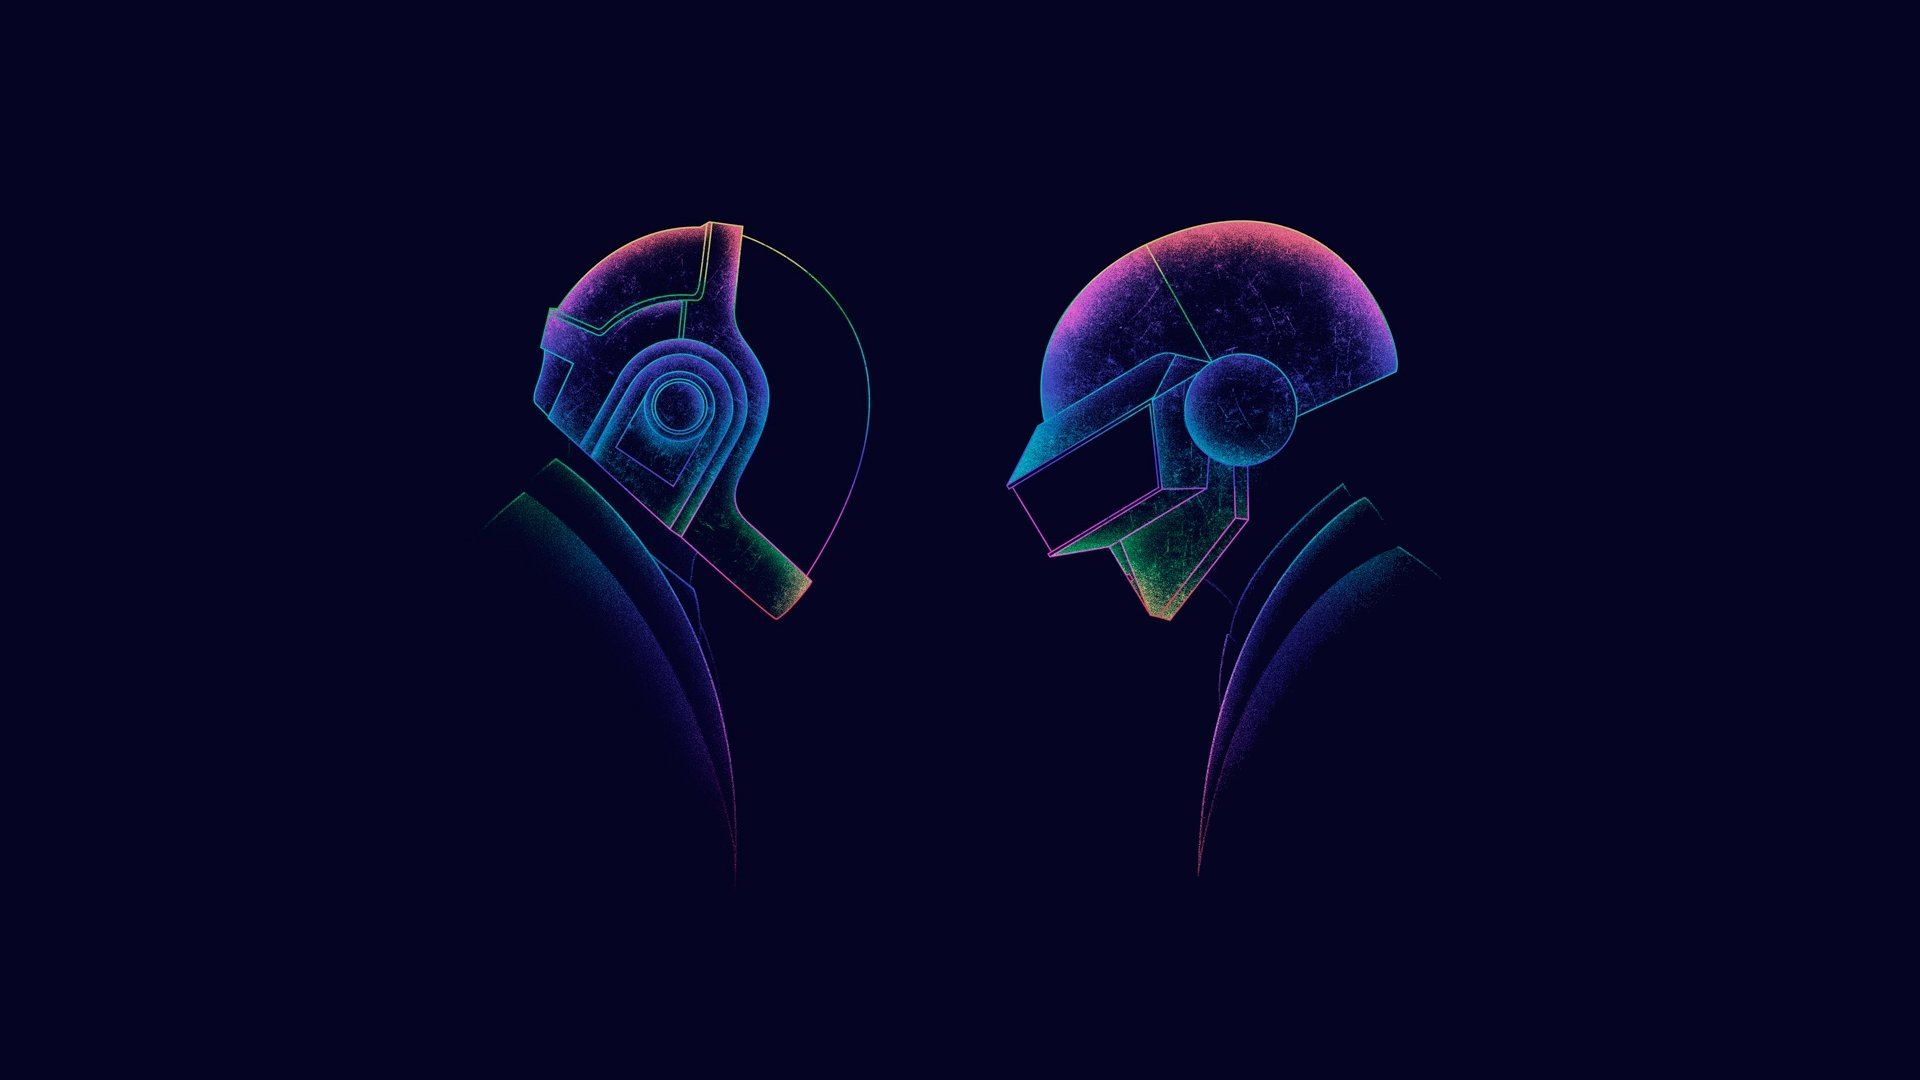 The Best Wallpapers For Iphone X Daft Punk 18003 Hd Wallpaper